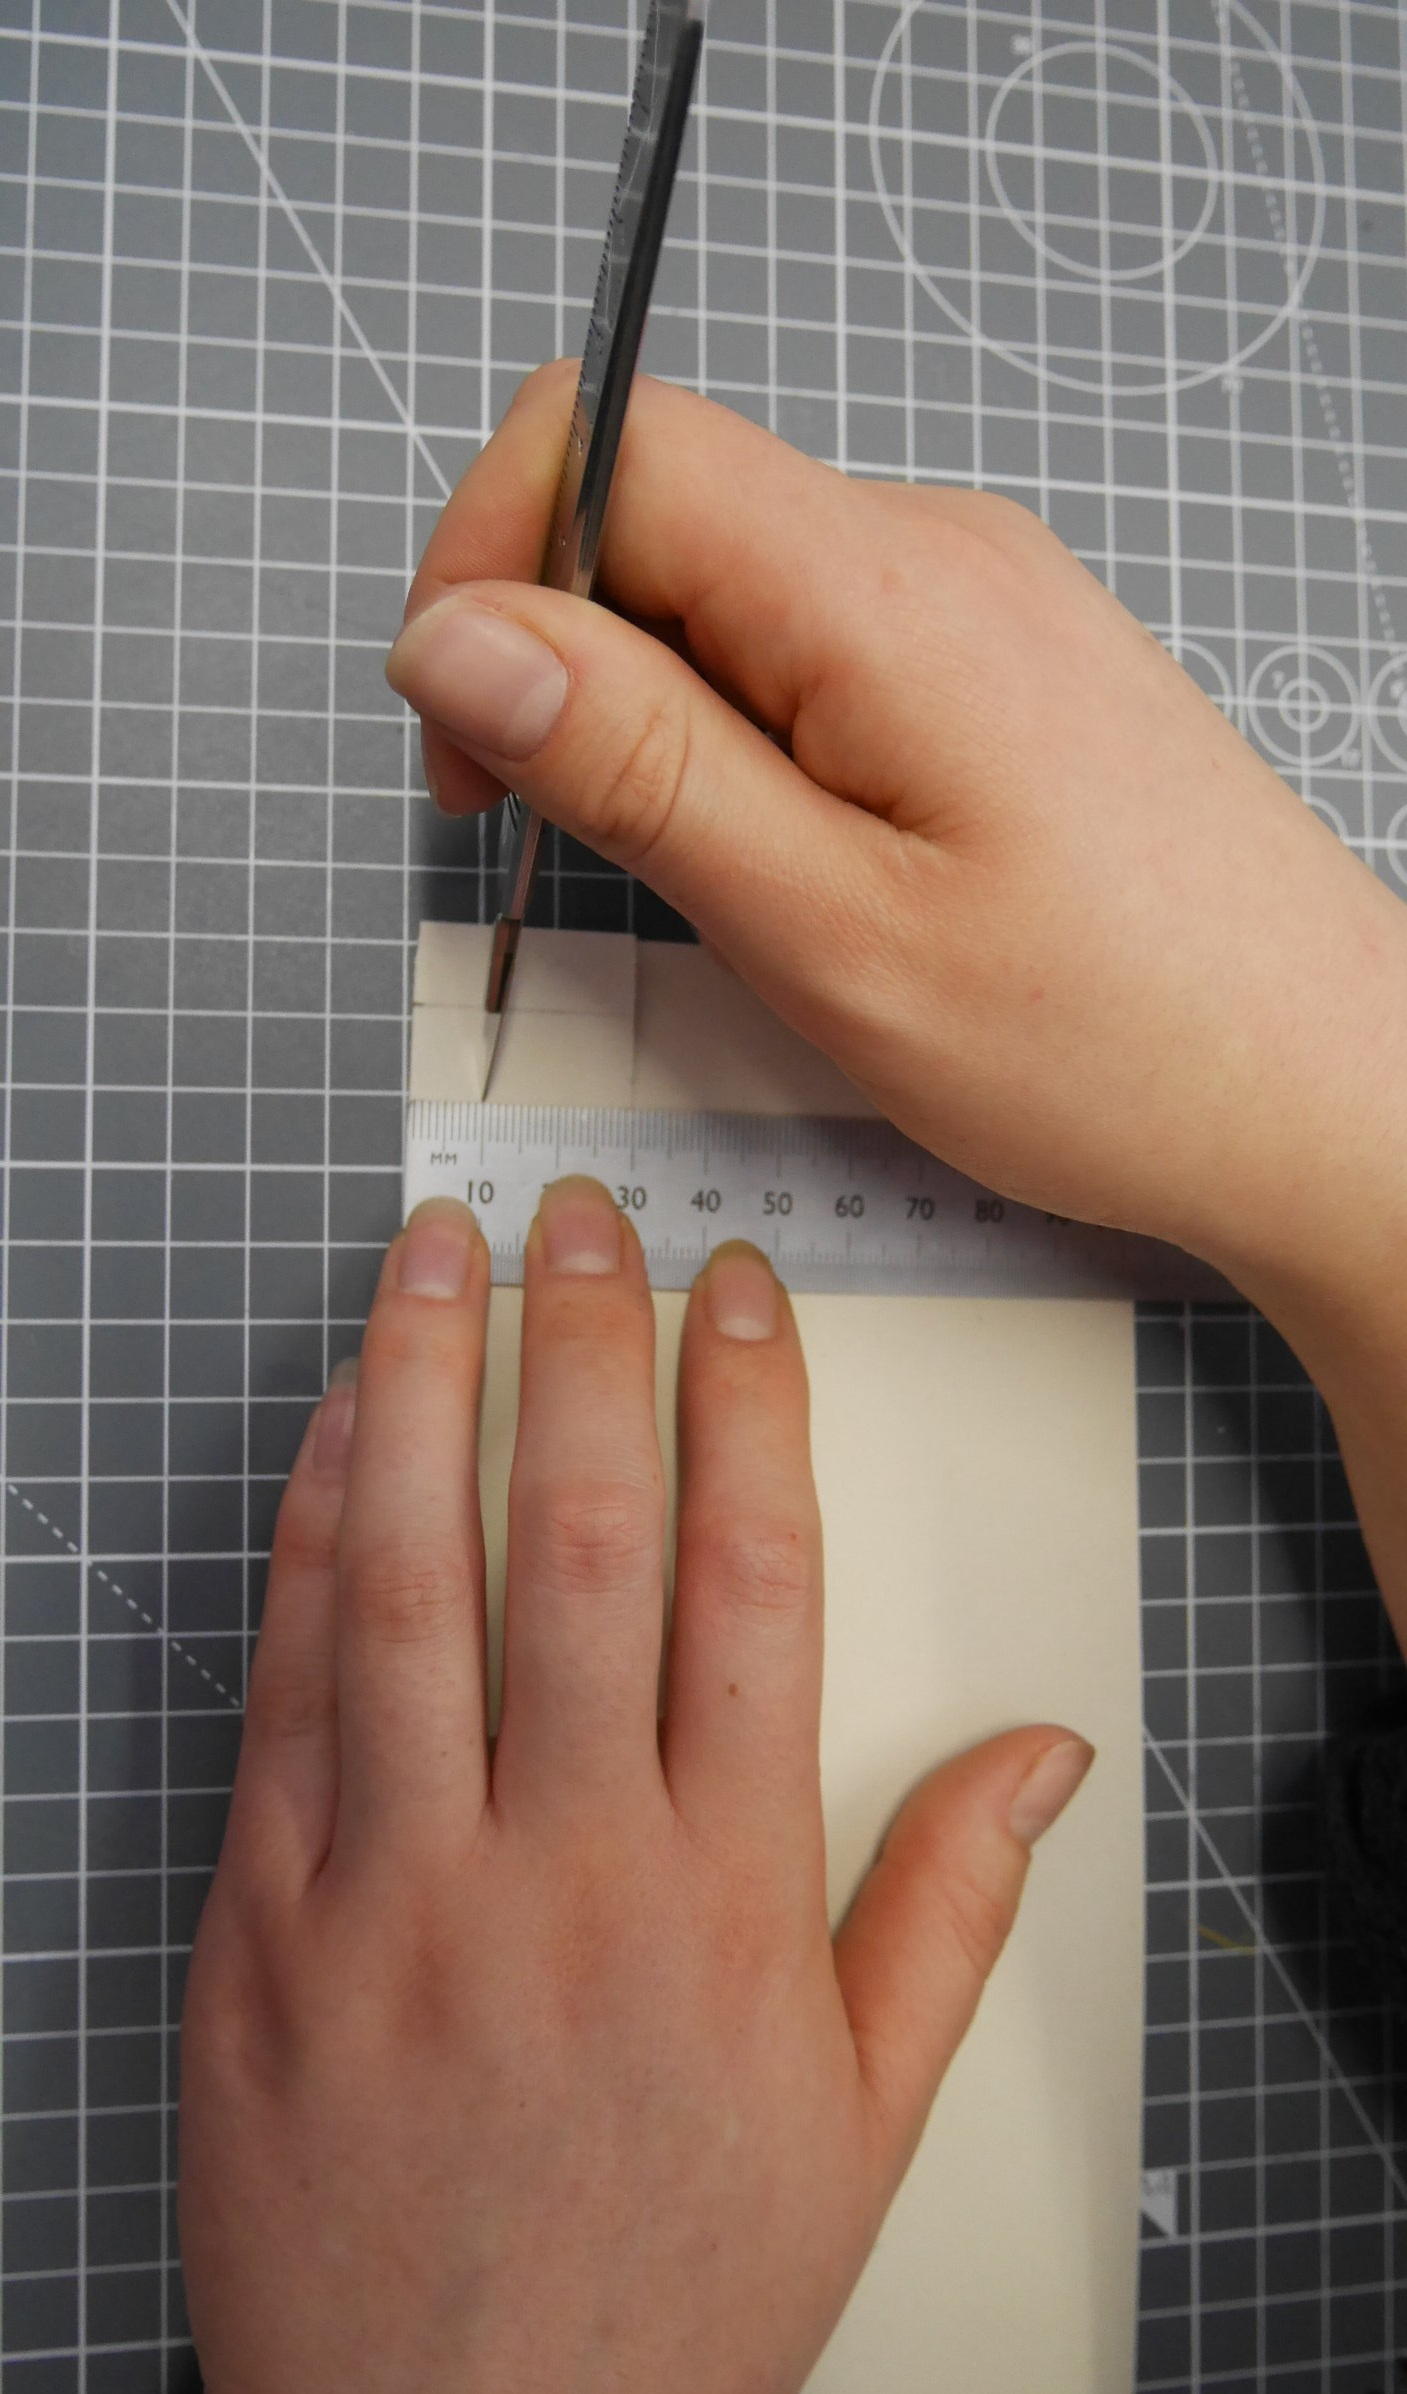 Creating a paper template